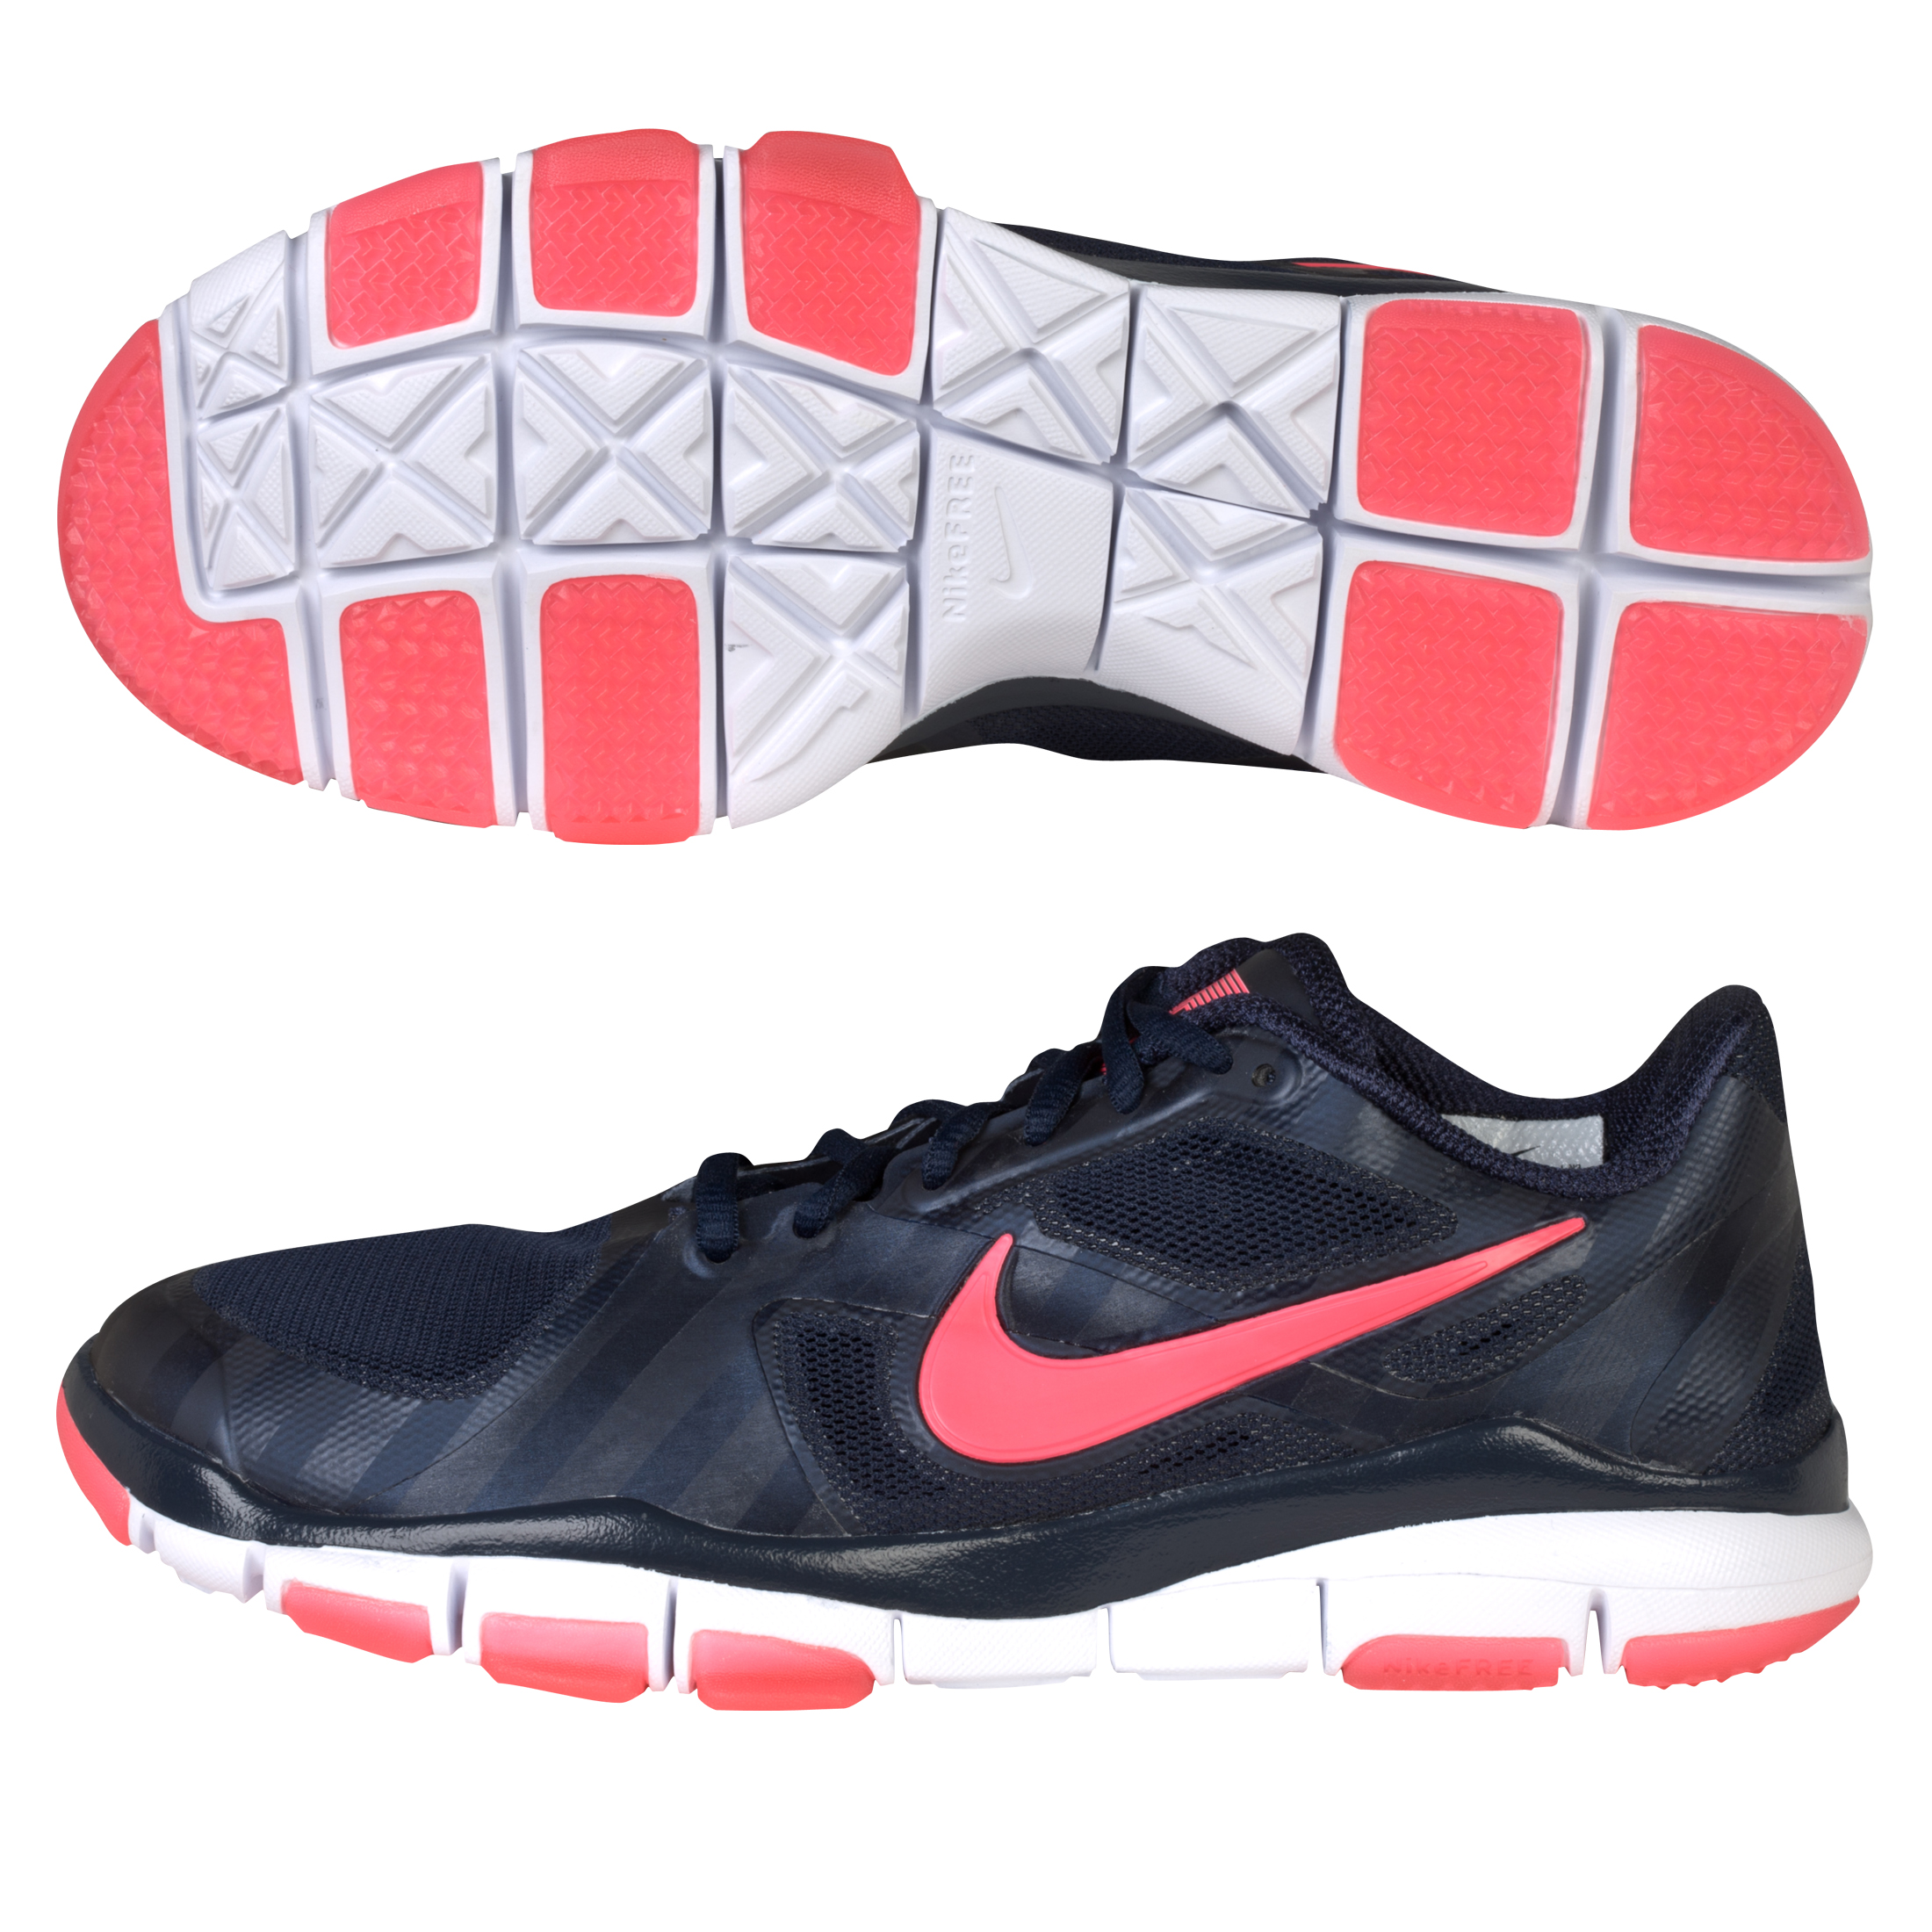 Nike CR7 Free Fuse 2 Trainers - Obsidian/Solar Red/White